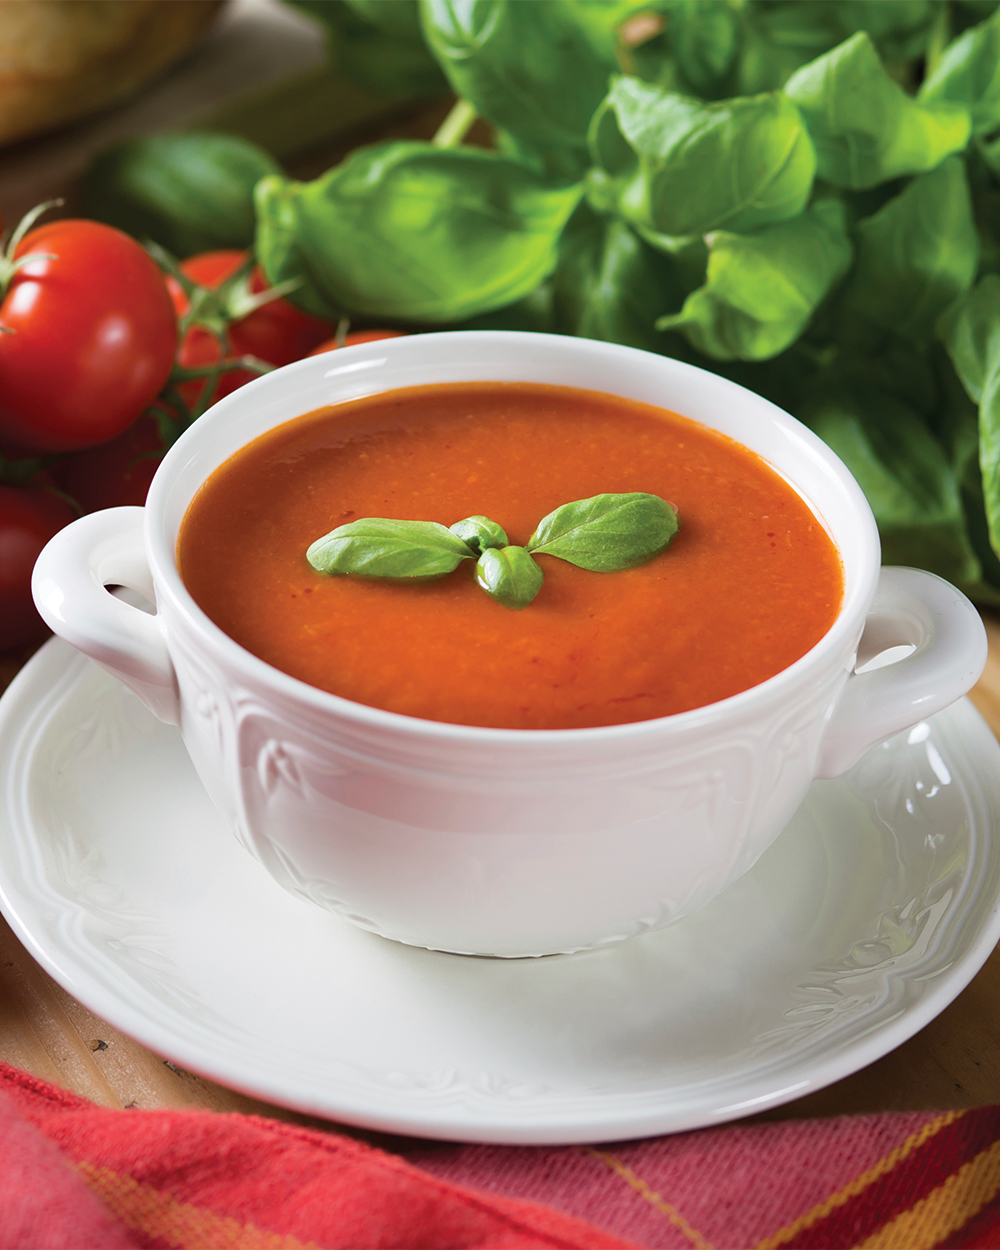 Classic Tomato Soup with Roasted Red Peppers